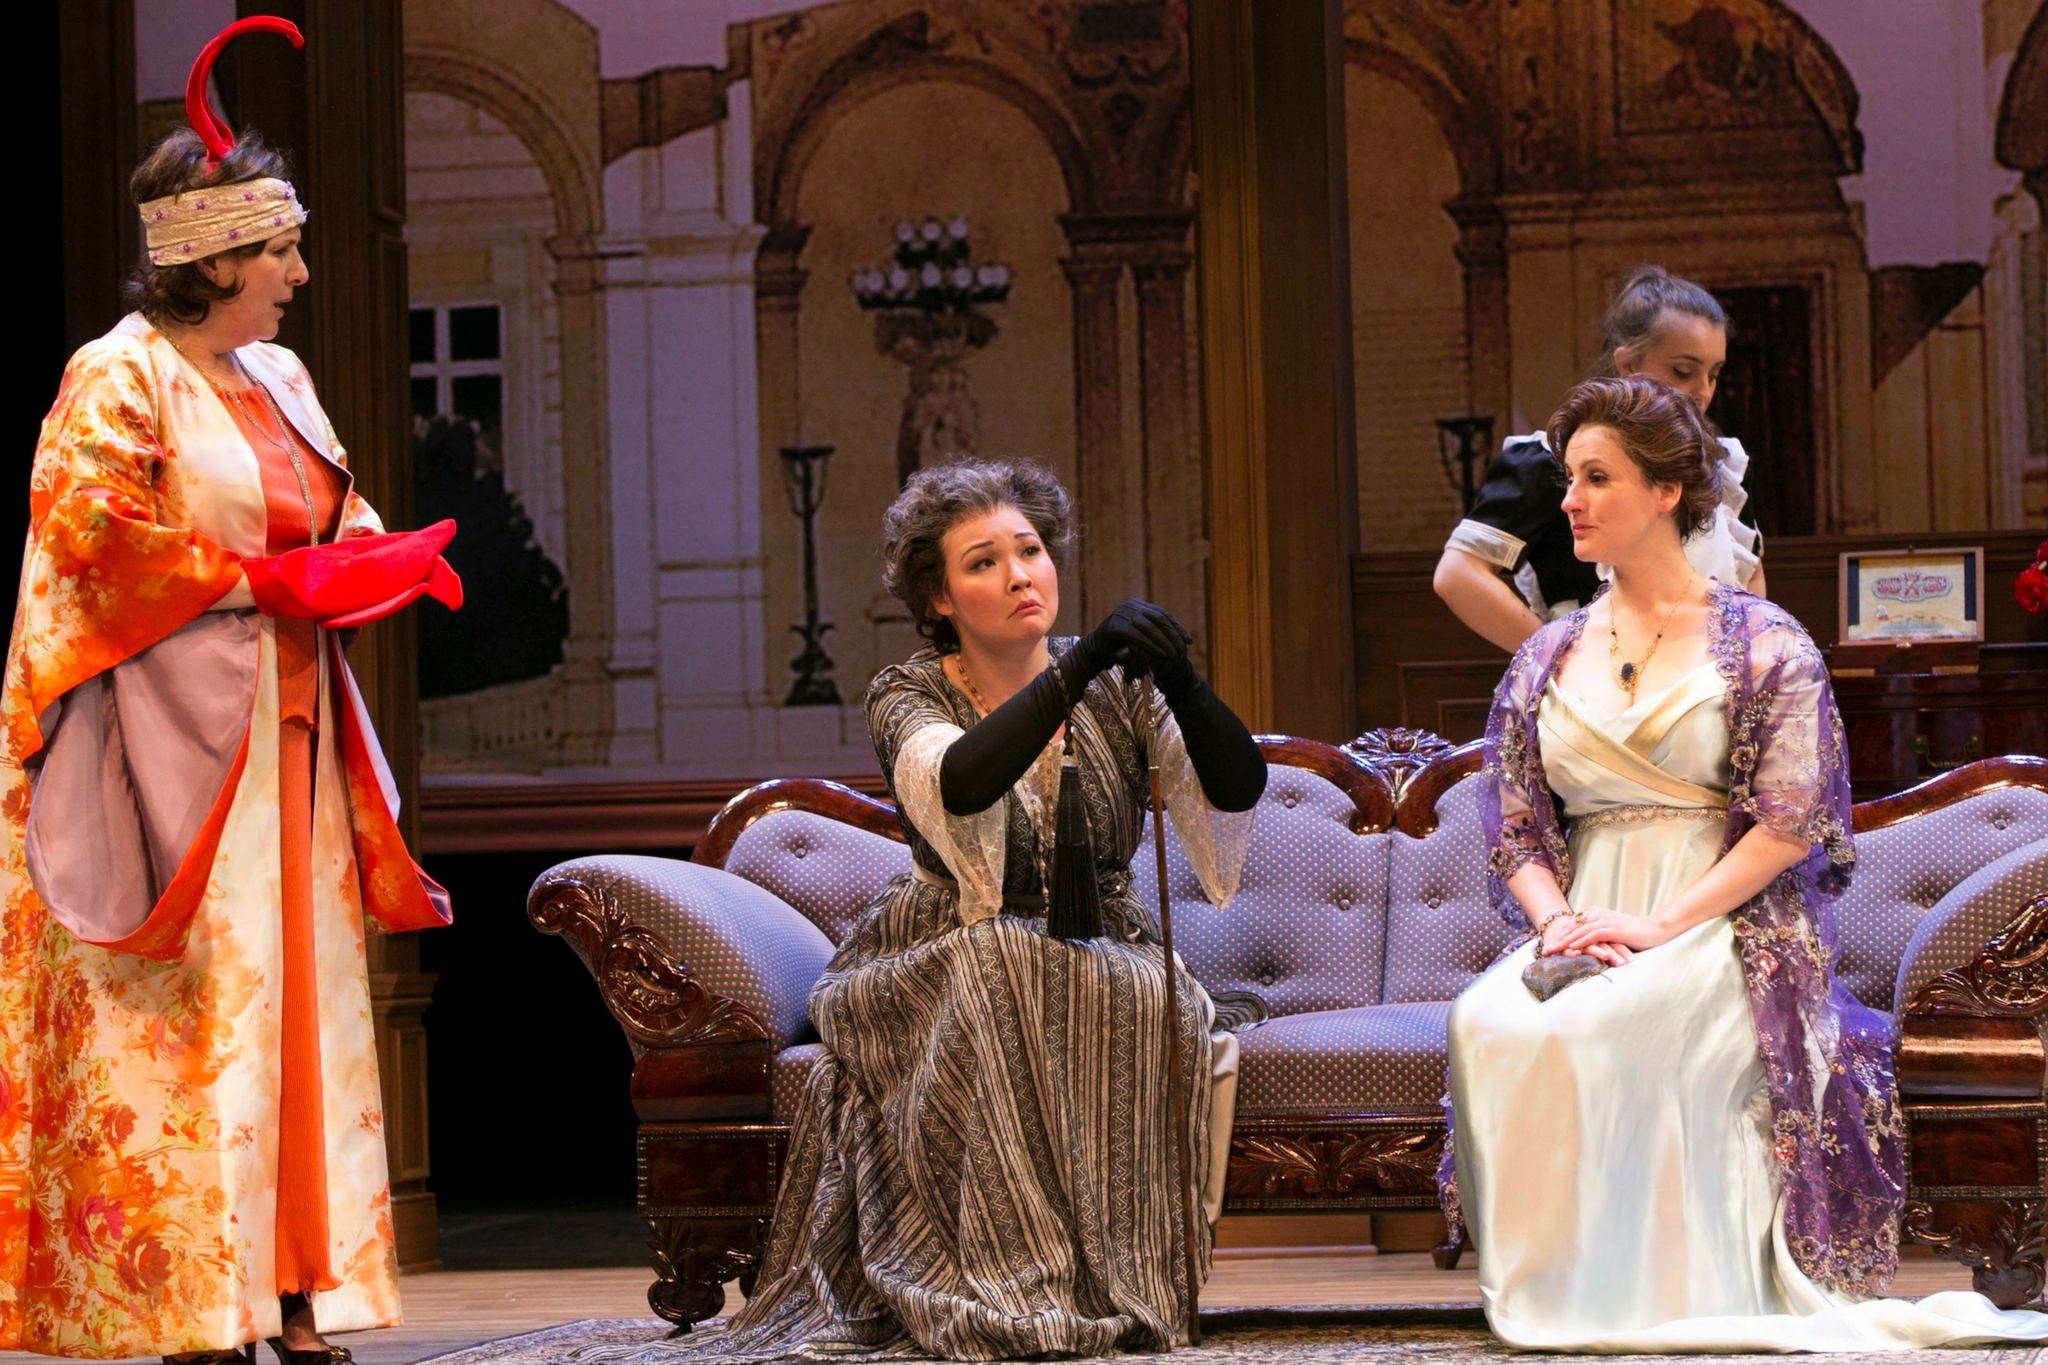 Veronica Anastasio Wiseman (Sally Webster), Jordan Clark (Betina Brevoort), Josephine Moshiri Elwood (Mary Gallagher), and Amanda Collins (Florence Deroot) in Old Money, 2018-Photo by Evgenia Eliseeva